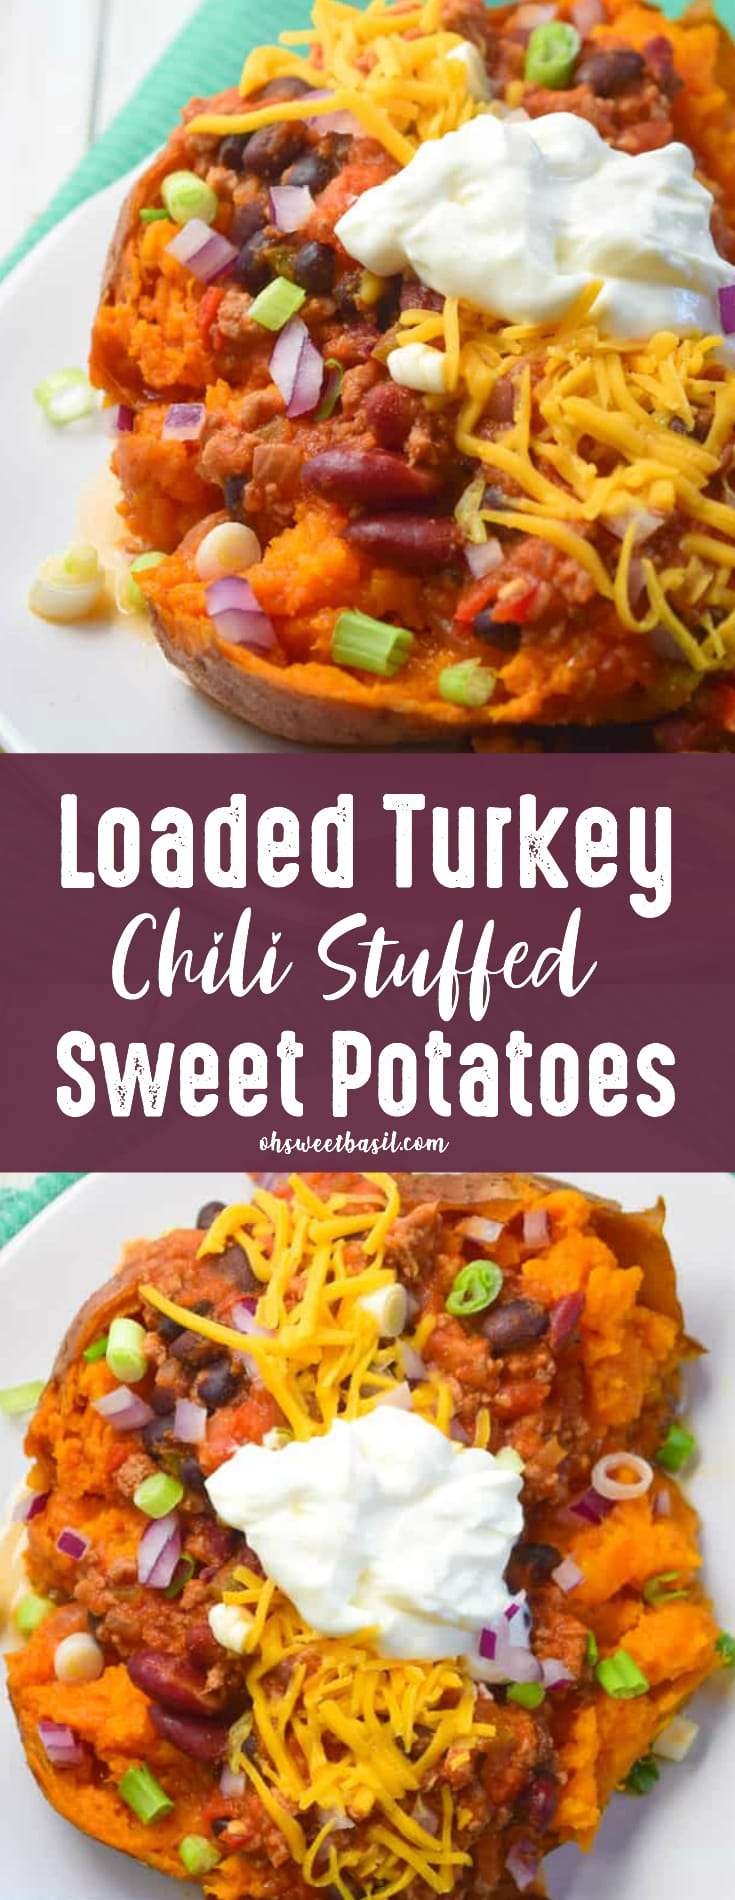 A loaded turkey chili stuffed sweet potato with cheese and sour cream on top